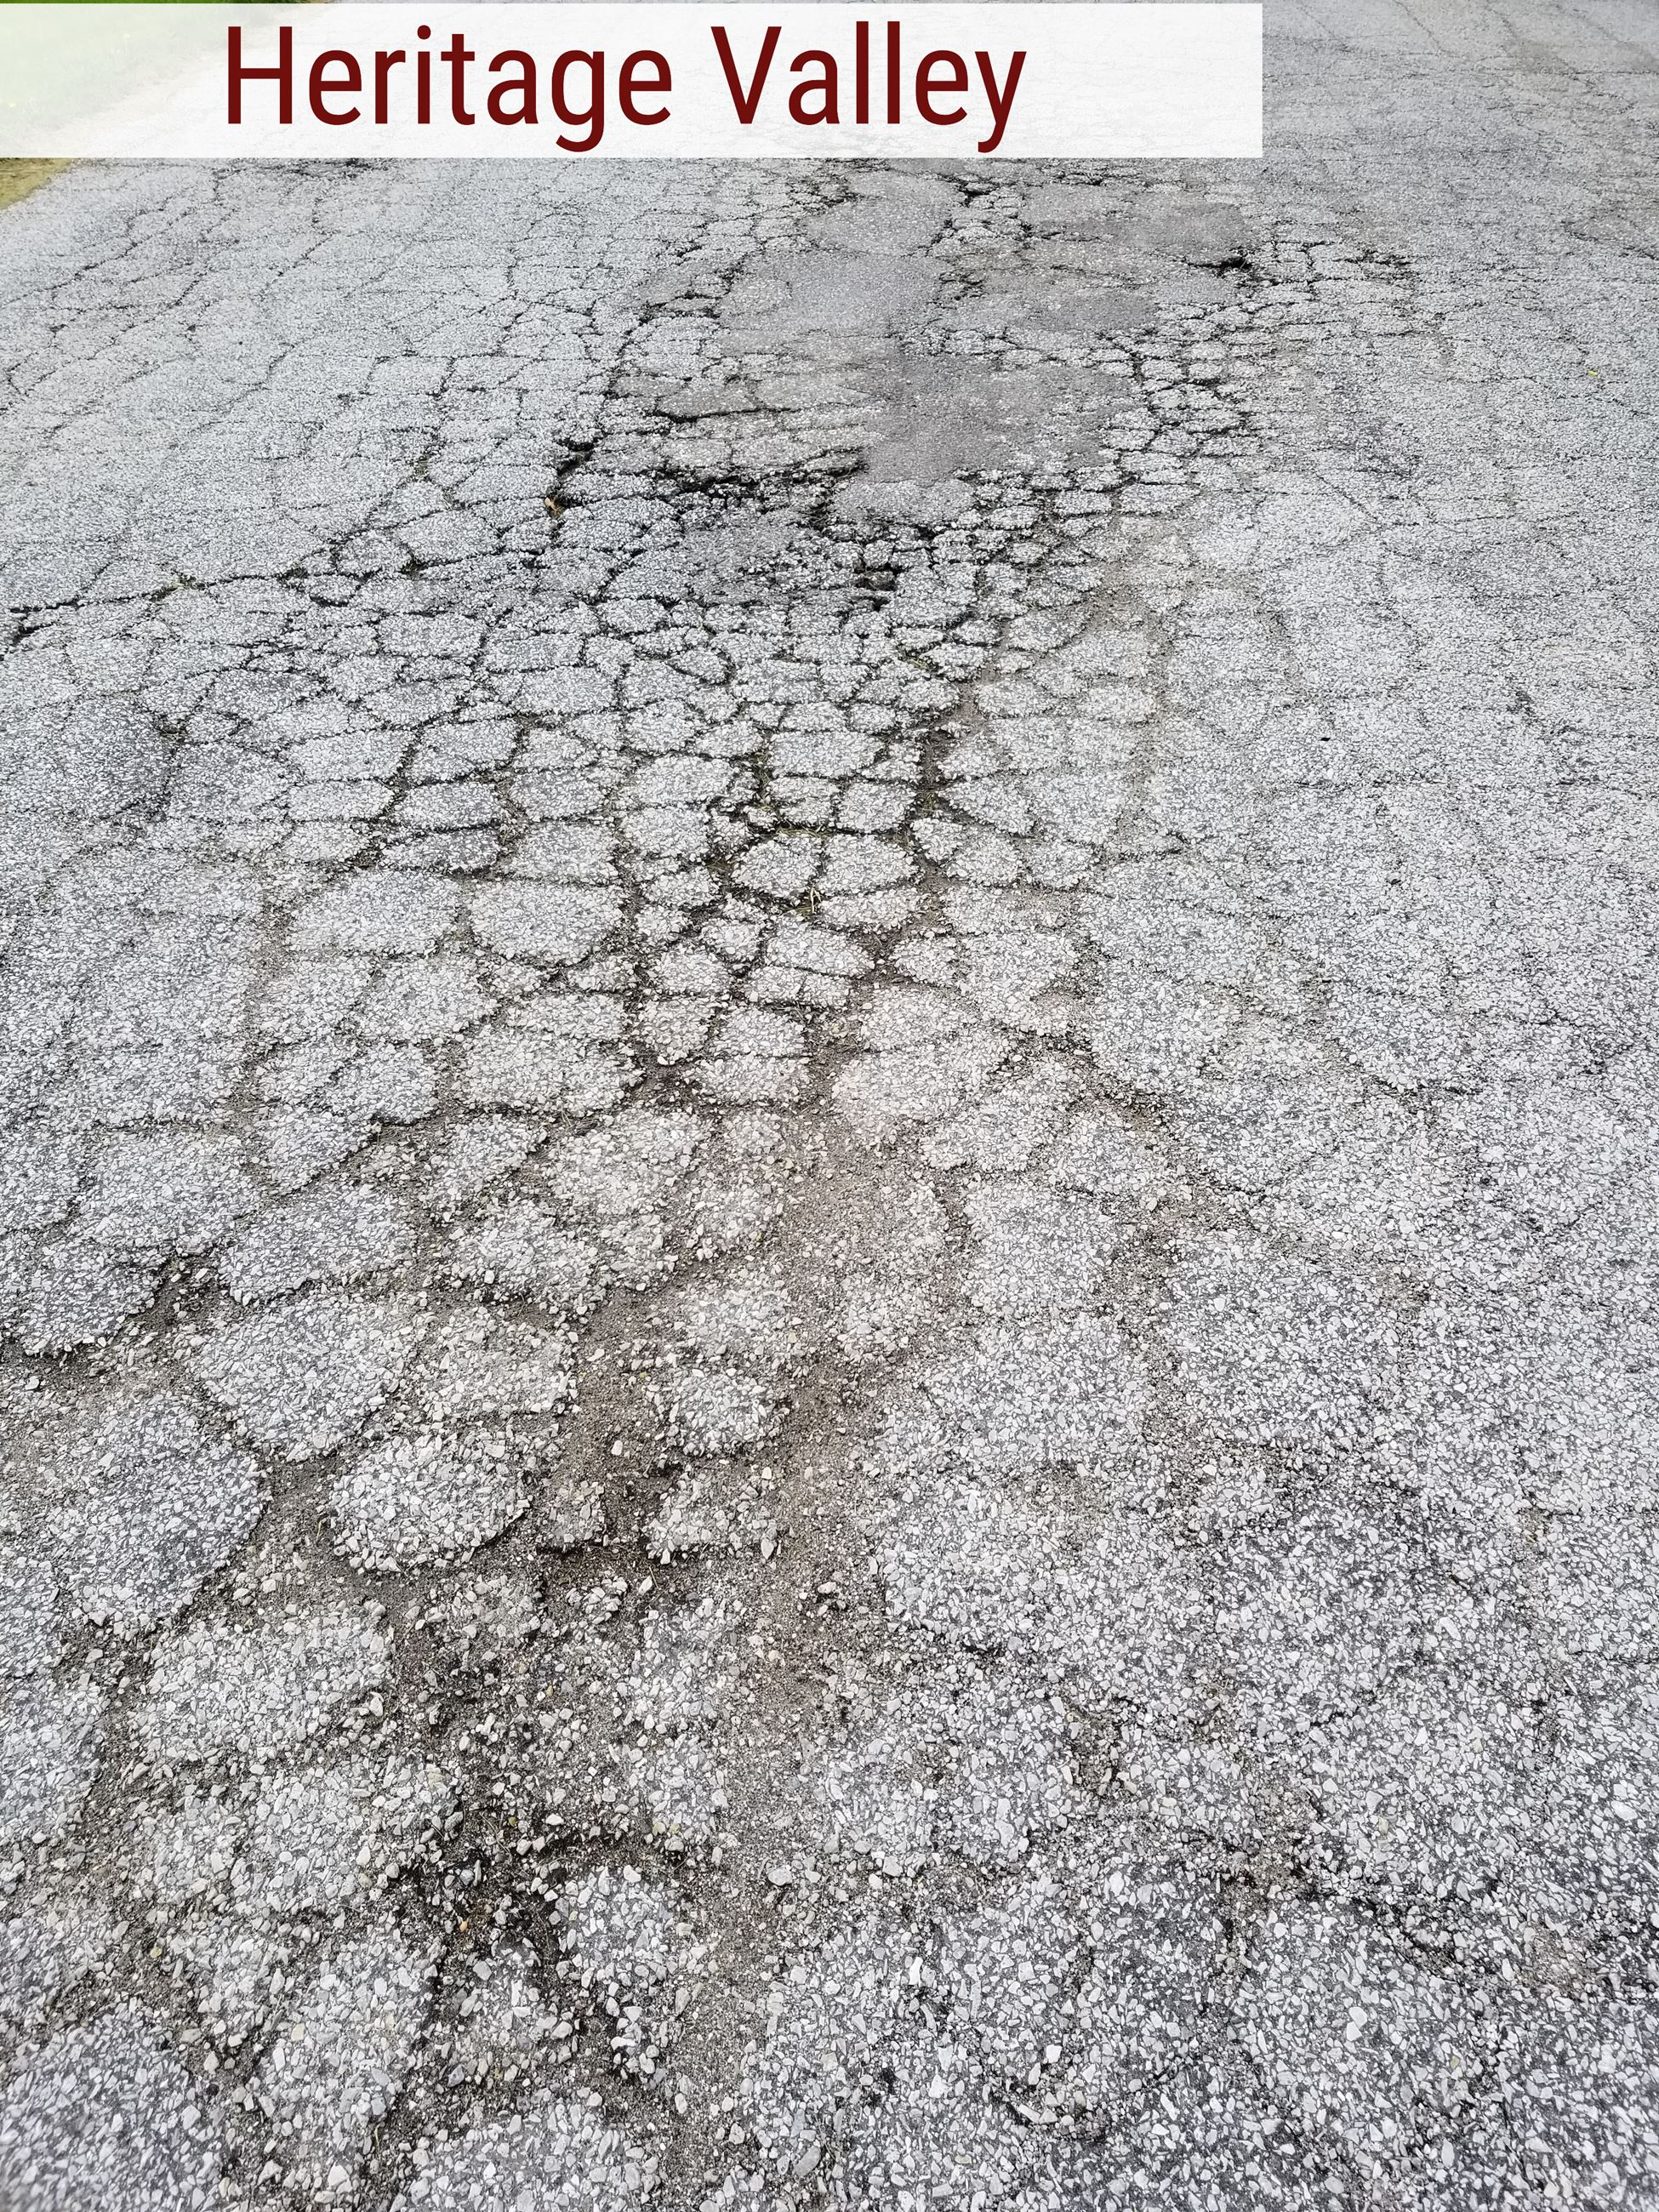 Crumbling road pavement in Heritage Valley subdivision